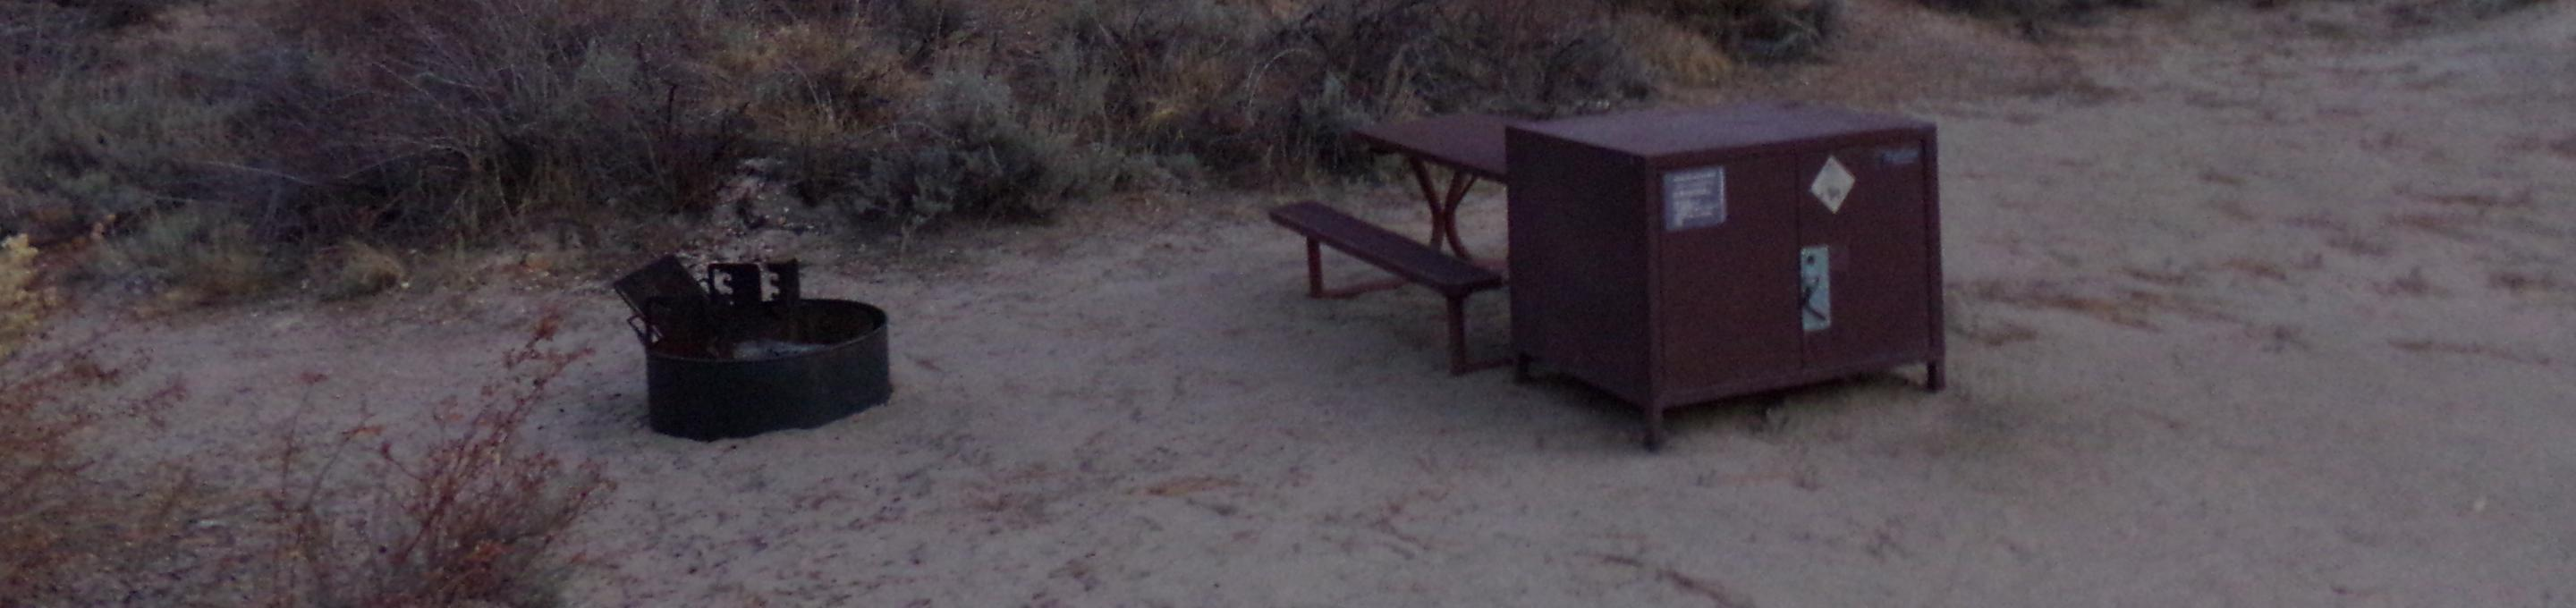 Tuff Campground site #20 featuring picnic area with camping space and fire pit by the mountain side.